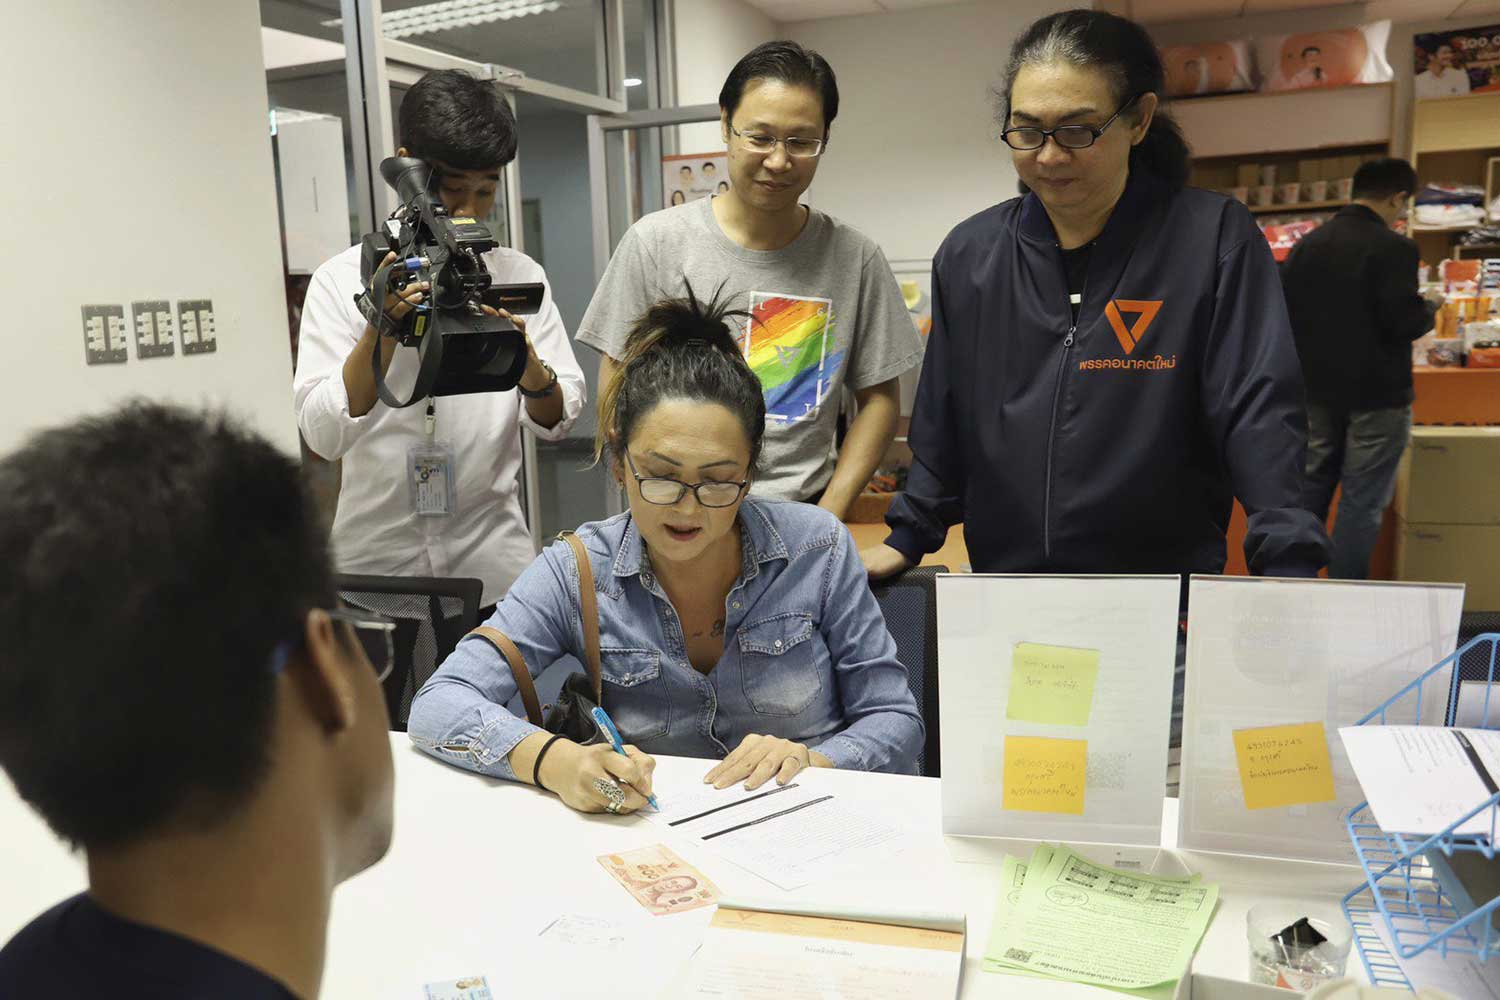 Pauline Ngampring fills out a membership application at the Future Forward Party office on Wednesday. (Photo from @FWPthailand Twitter account)